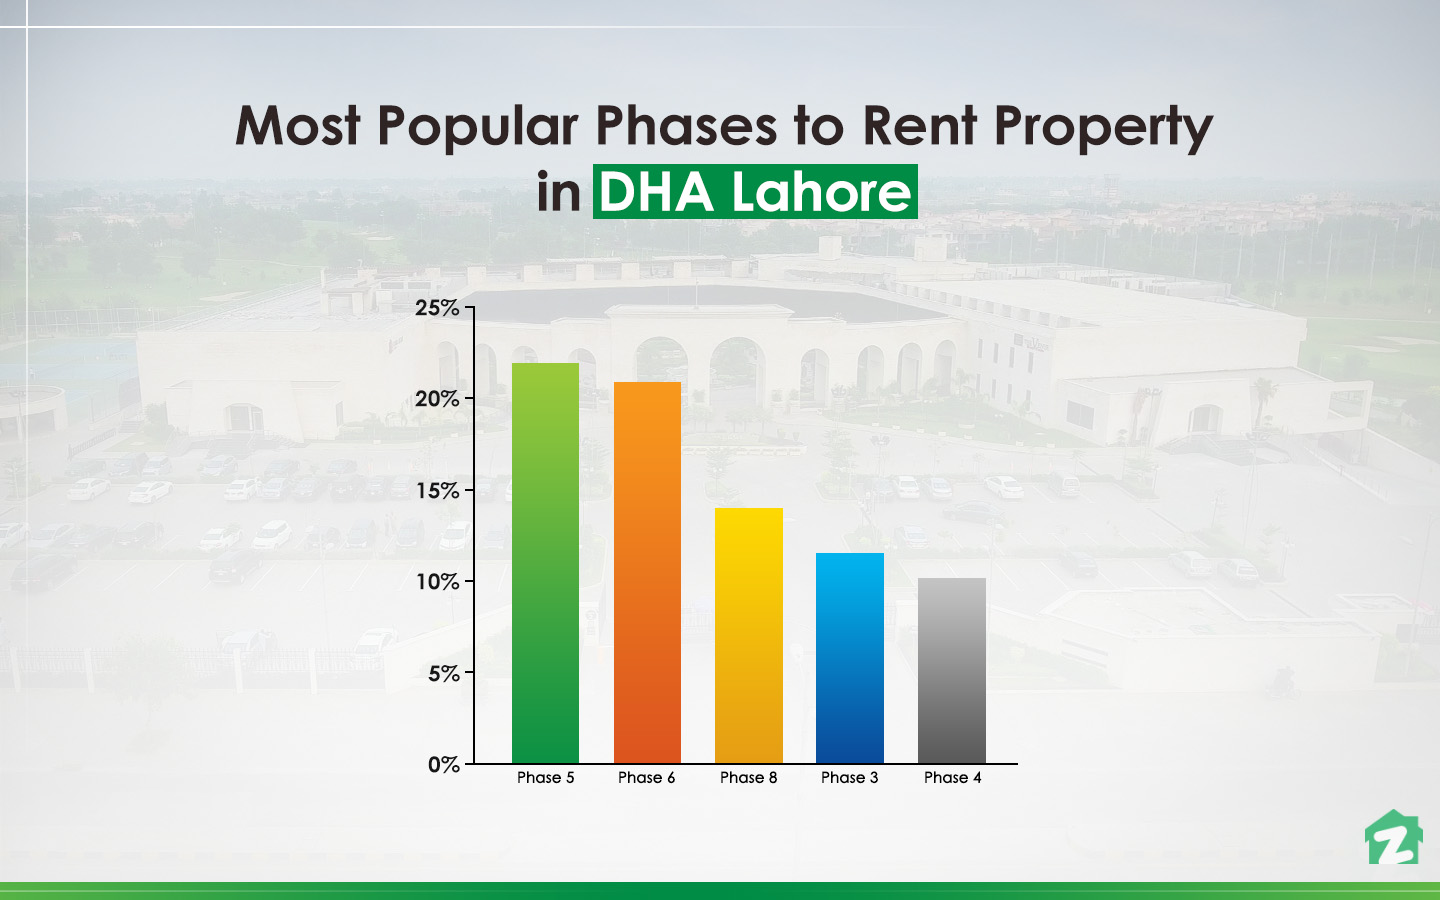 top phases in DHA Lahore for renting properties